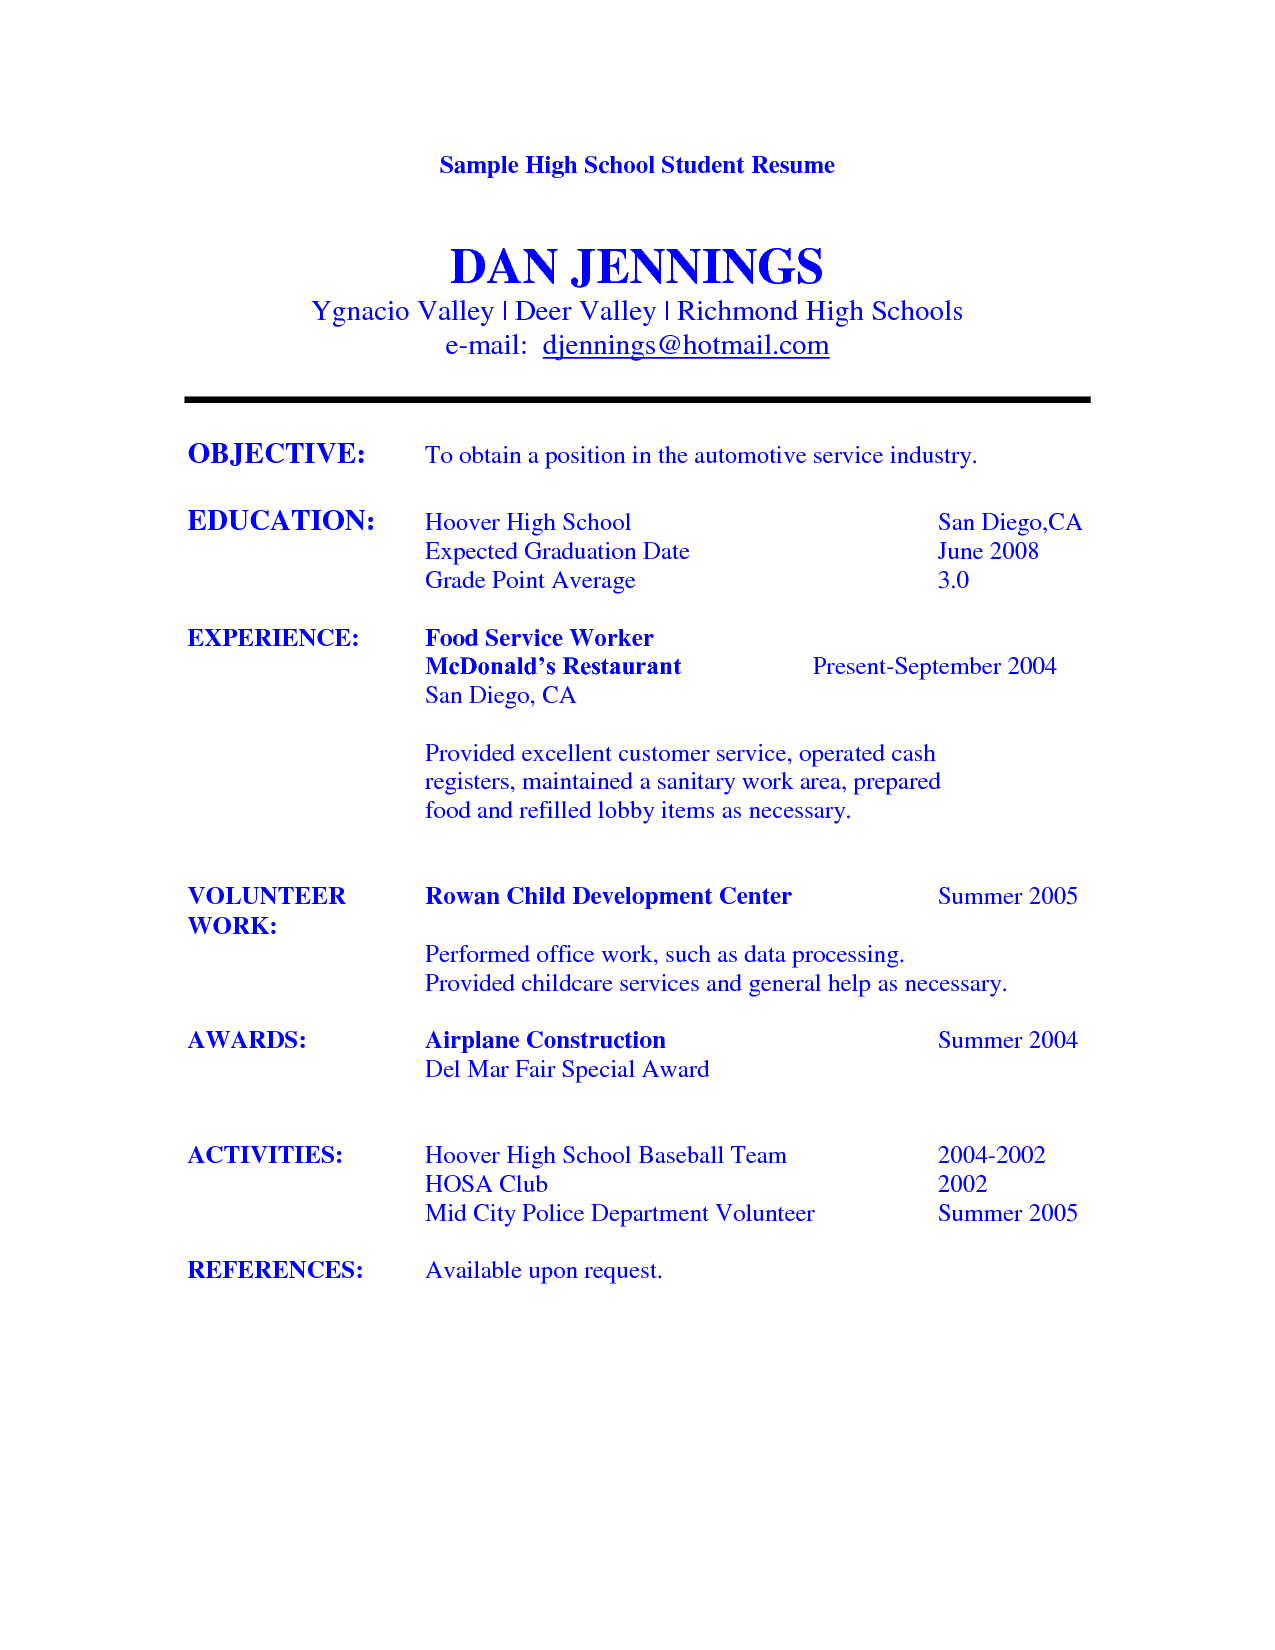 Resume example for high school student sample resumes httpwww resume example for high school student sample resumes httpresumecareer yelopaper Images